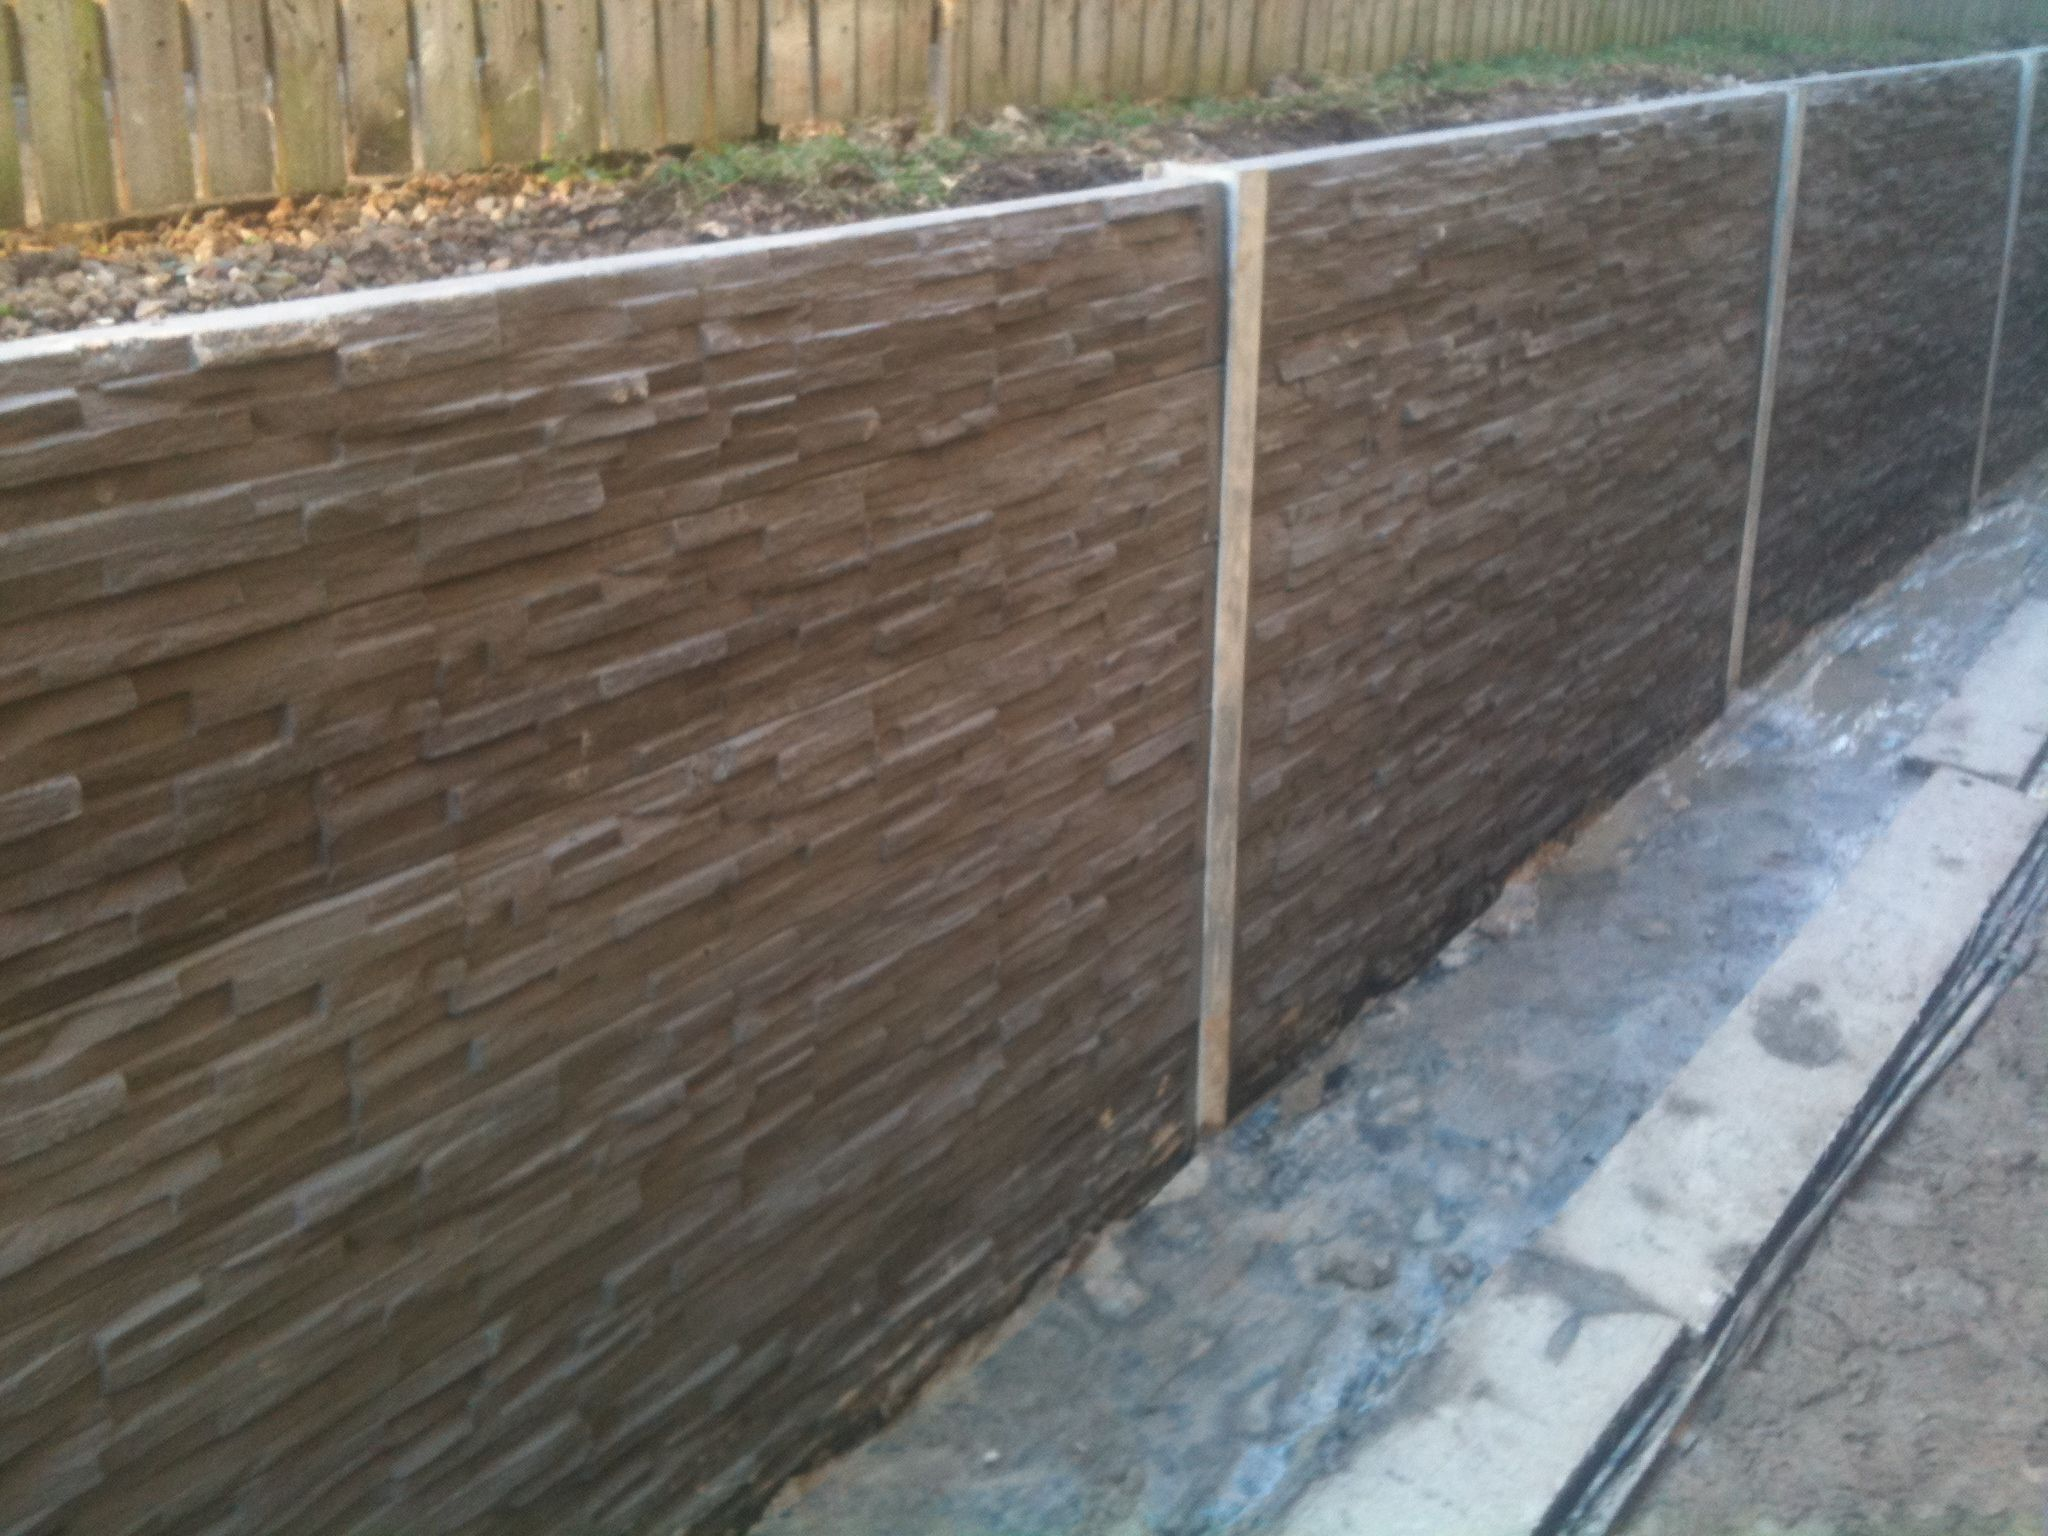 Concrete Sleepers Retaining Wall Google Search Concrete Retaining Walls Concrete Sleeper Retaining Walls Garden Retaining Wall